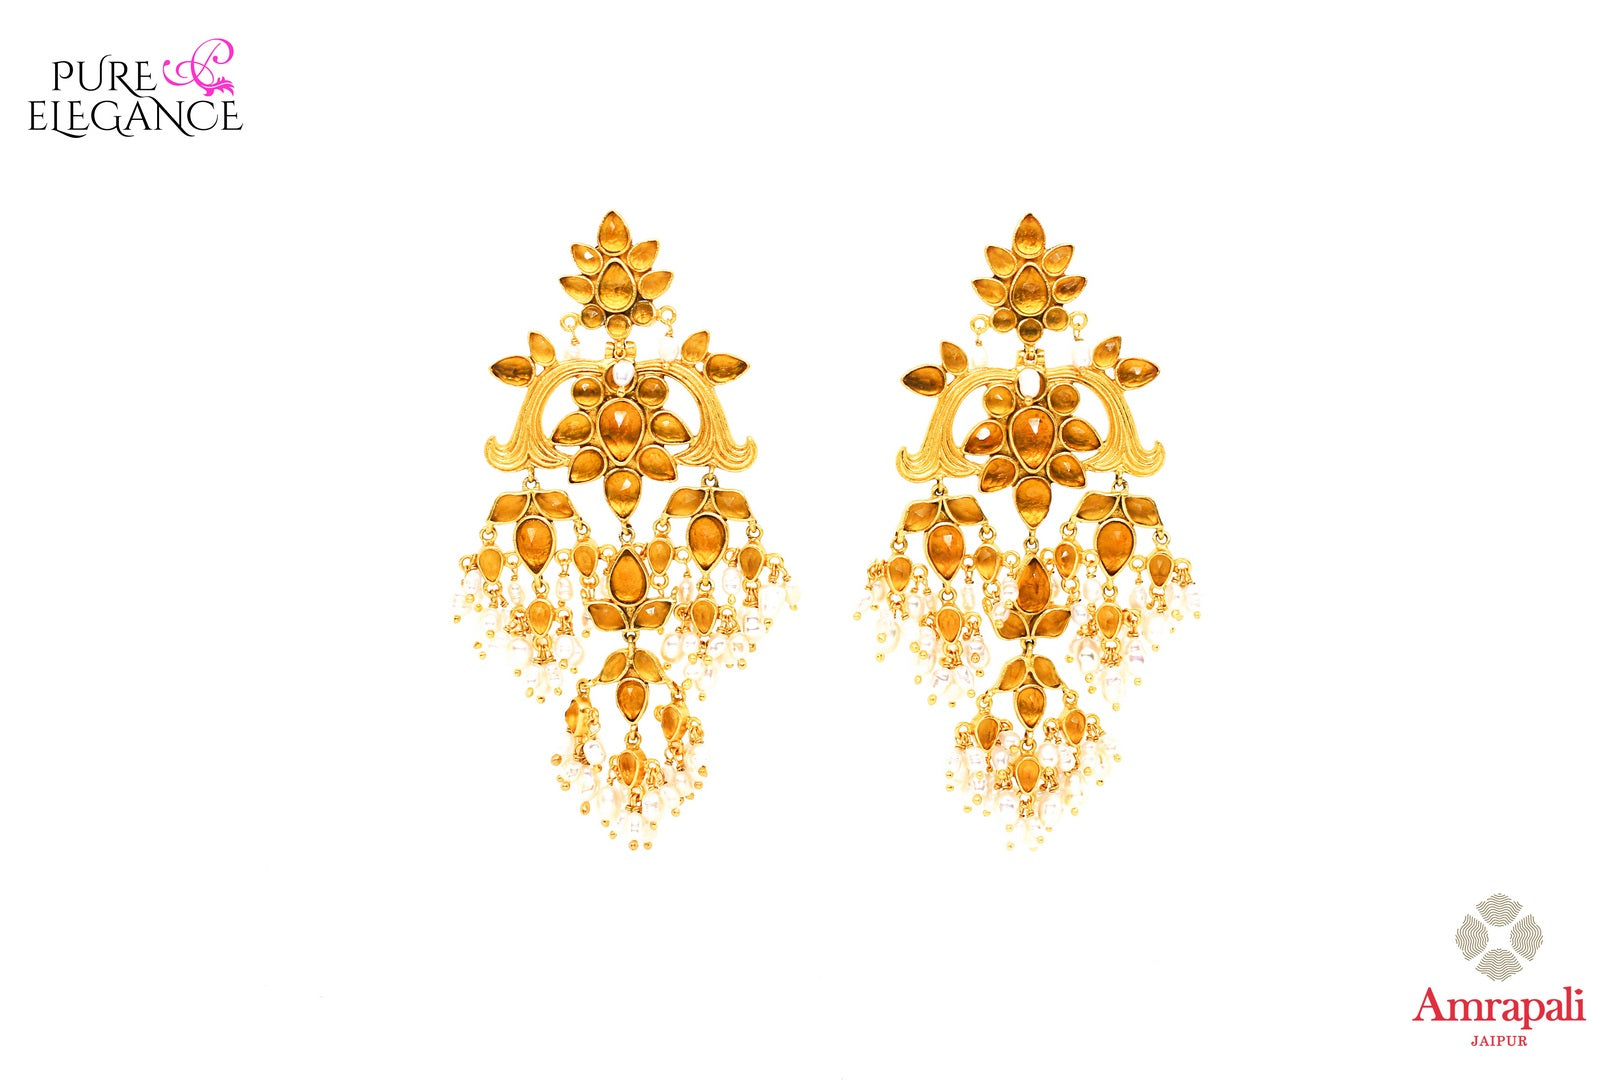 Buy exquisite silver gold plated yellow glass earrings with pearls online in USA from Amrapali. Add a traditional touch to your Indian look at weddings with these one of a kind earrings. Shop more such gorgeous Indian jewelry in USA at Pure Elegance, you can visit our exclusive fashion store in USA or shop online.-front look